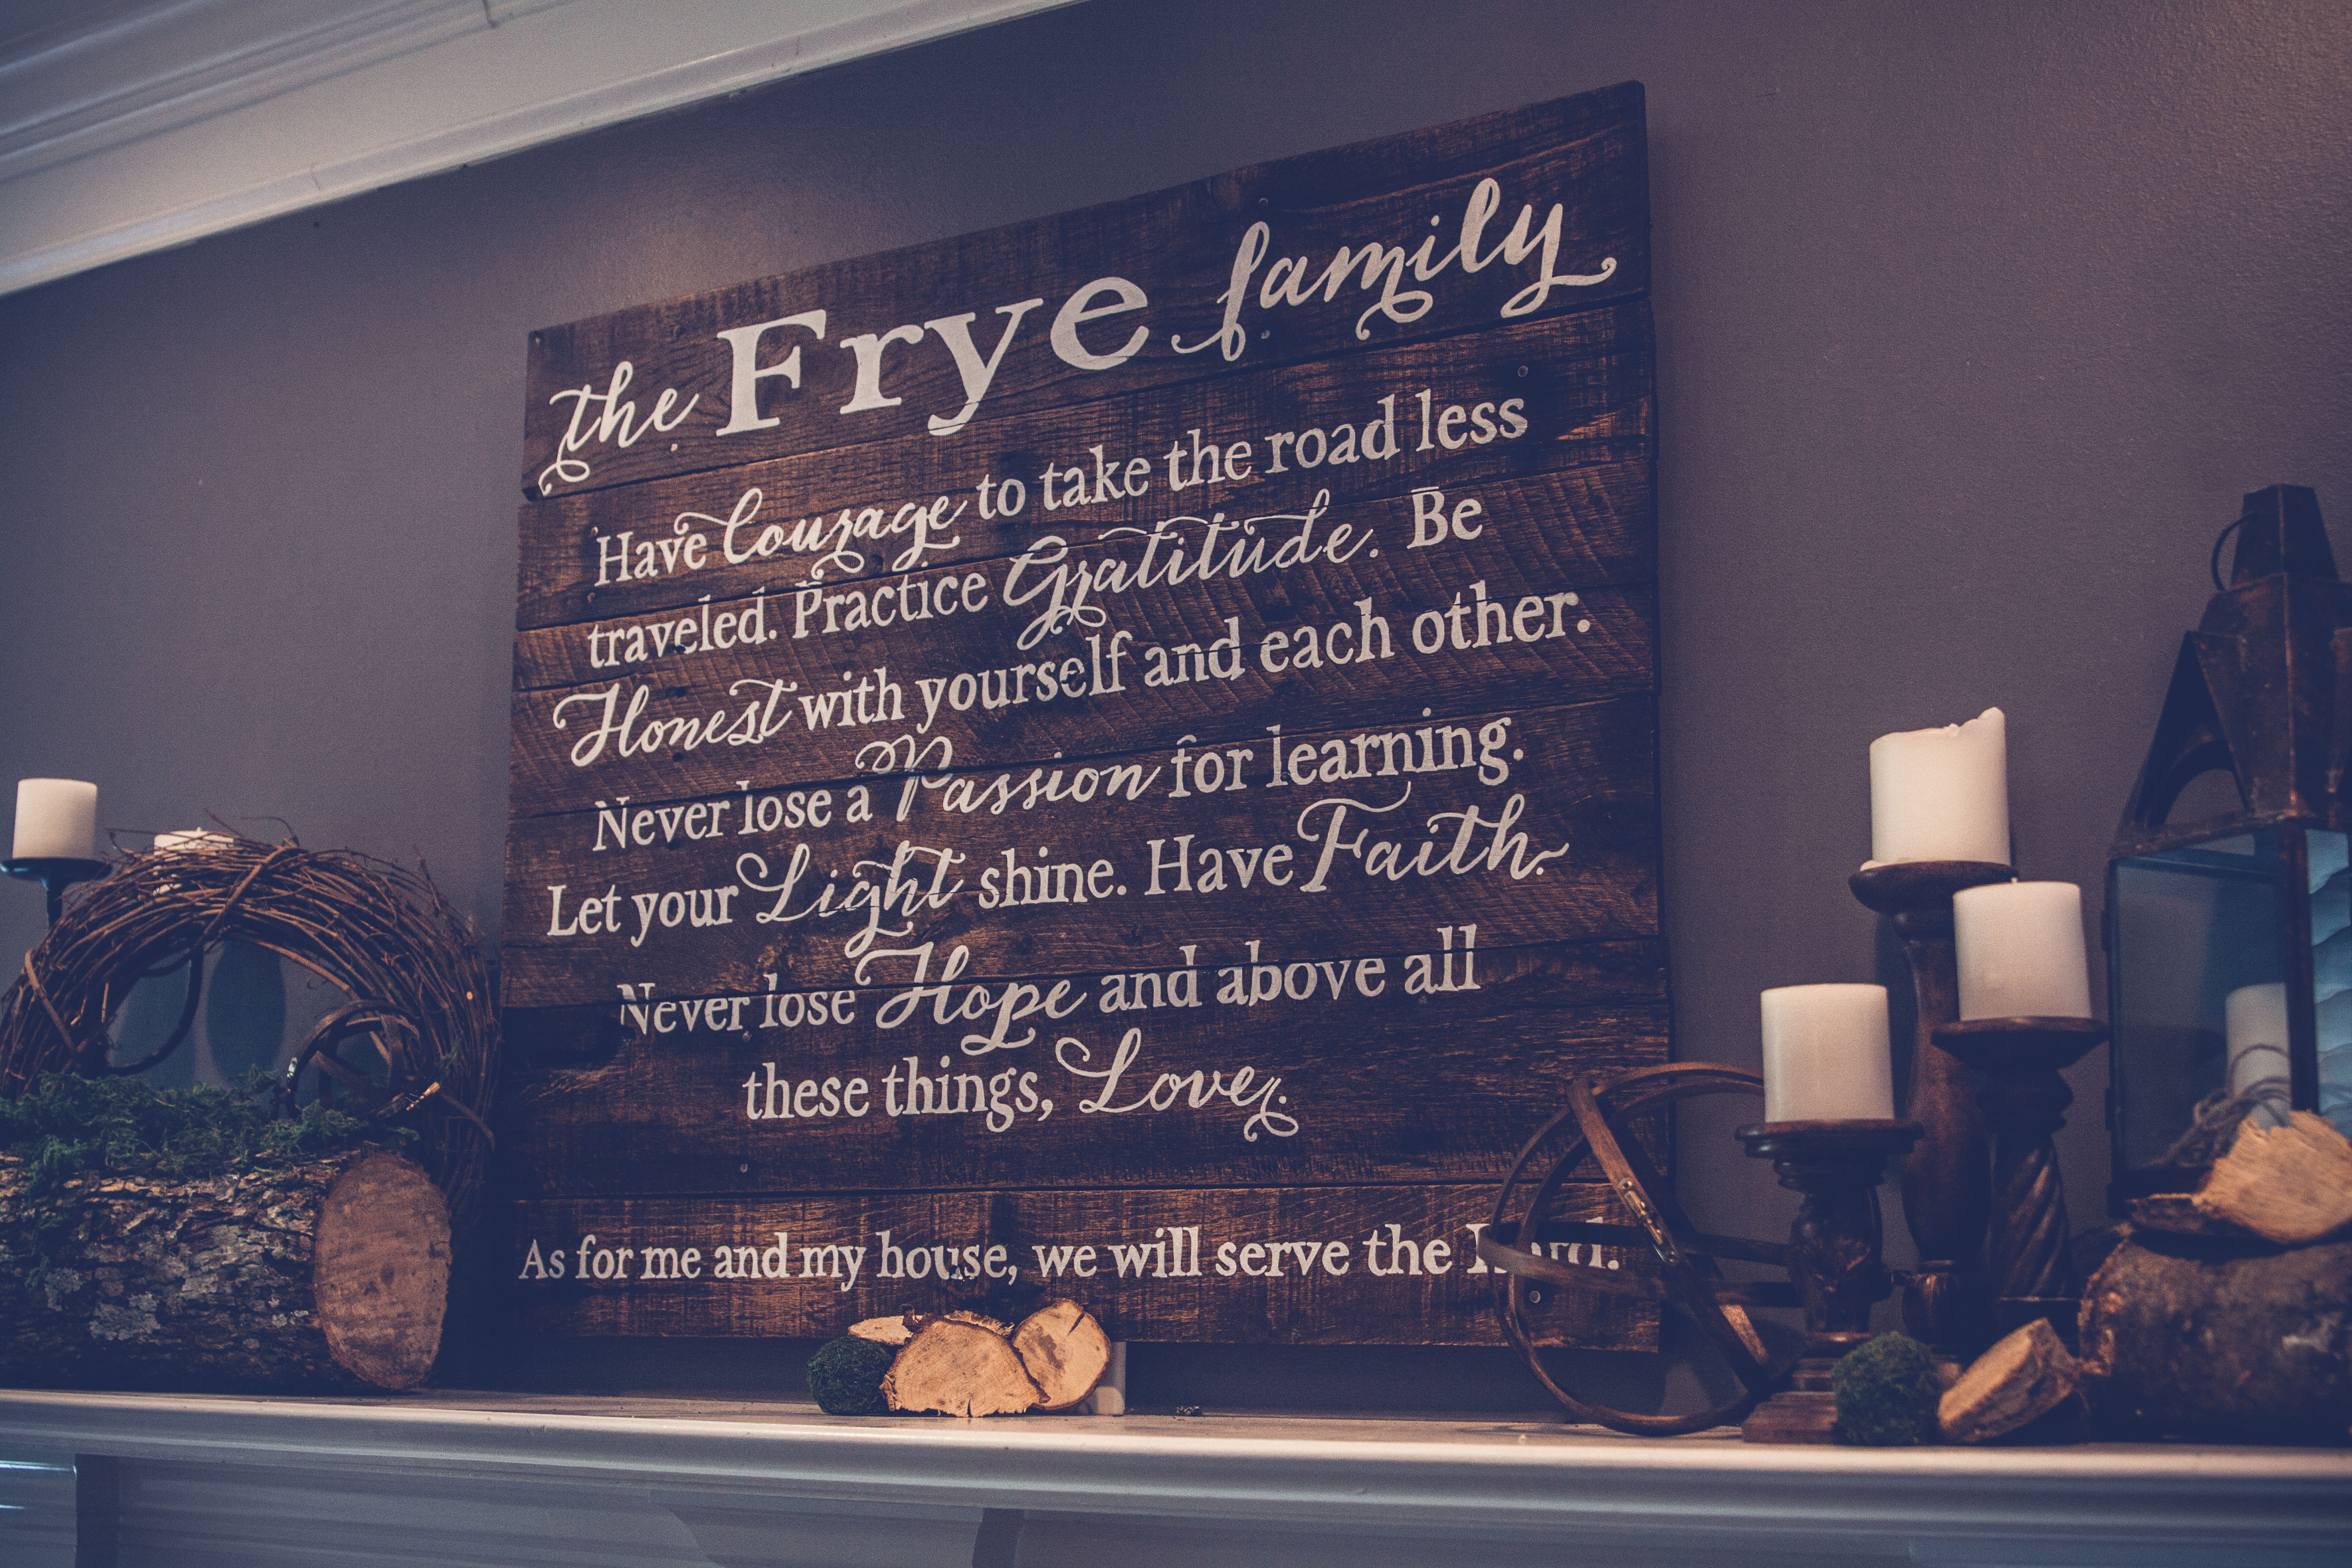 large family mission statement sign frye design lfmsfdx large family mission statement sign frye design lfmsfd36x24 thumbnail 2